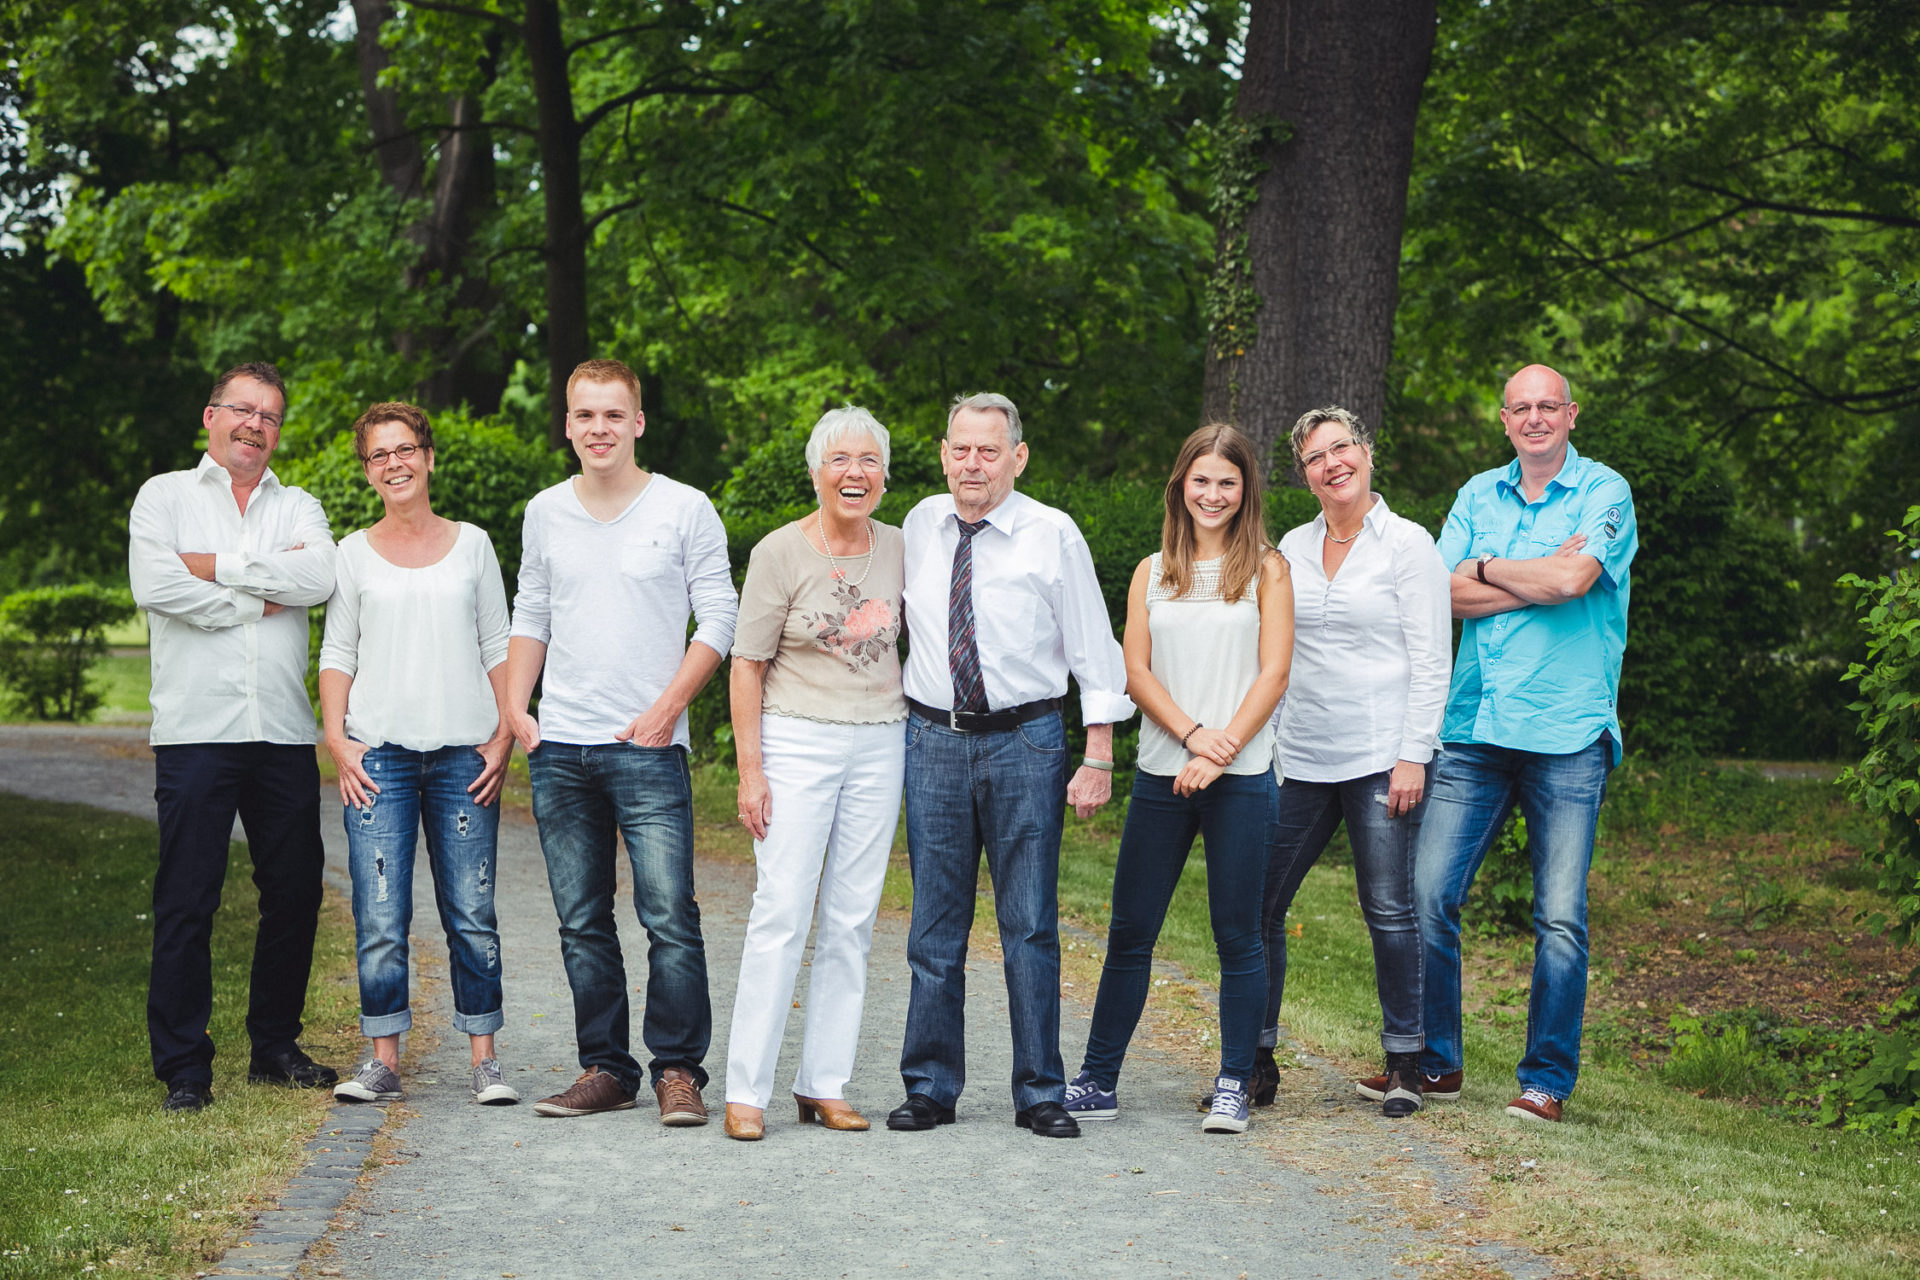 Familienshooting-2279